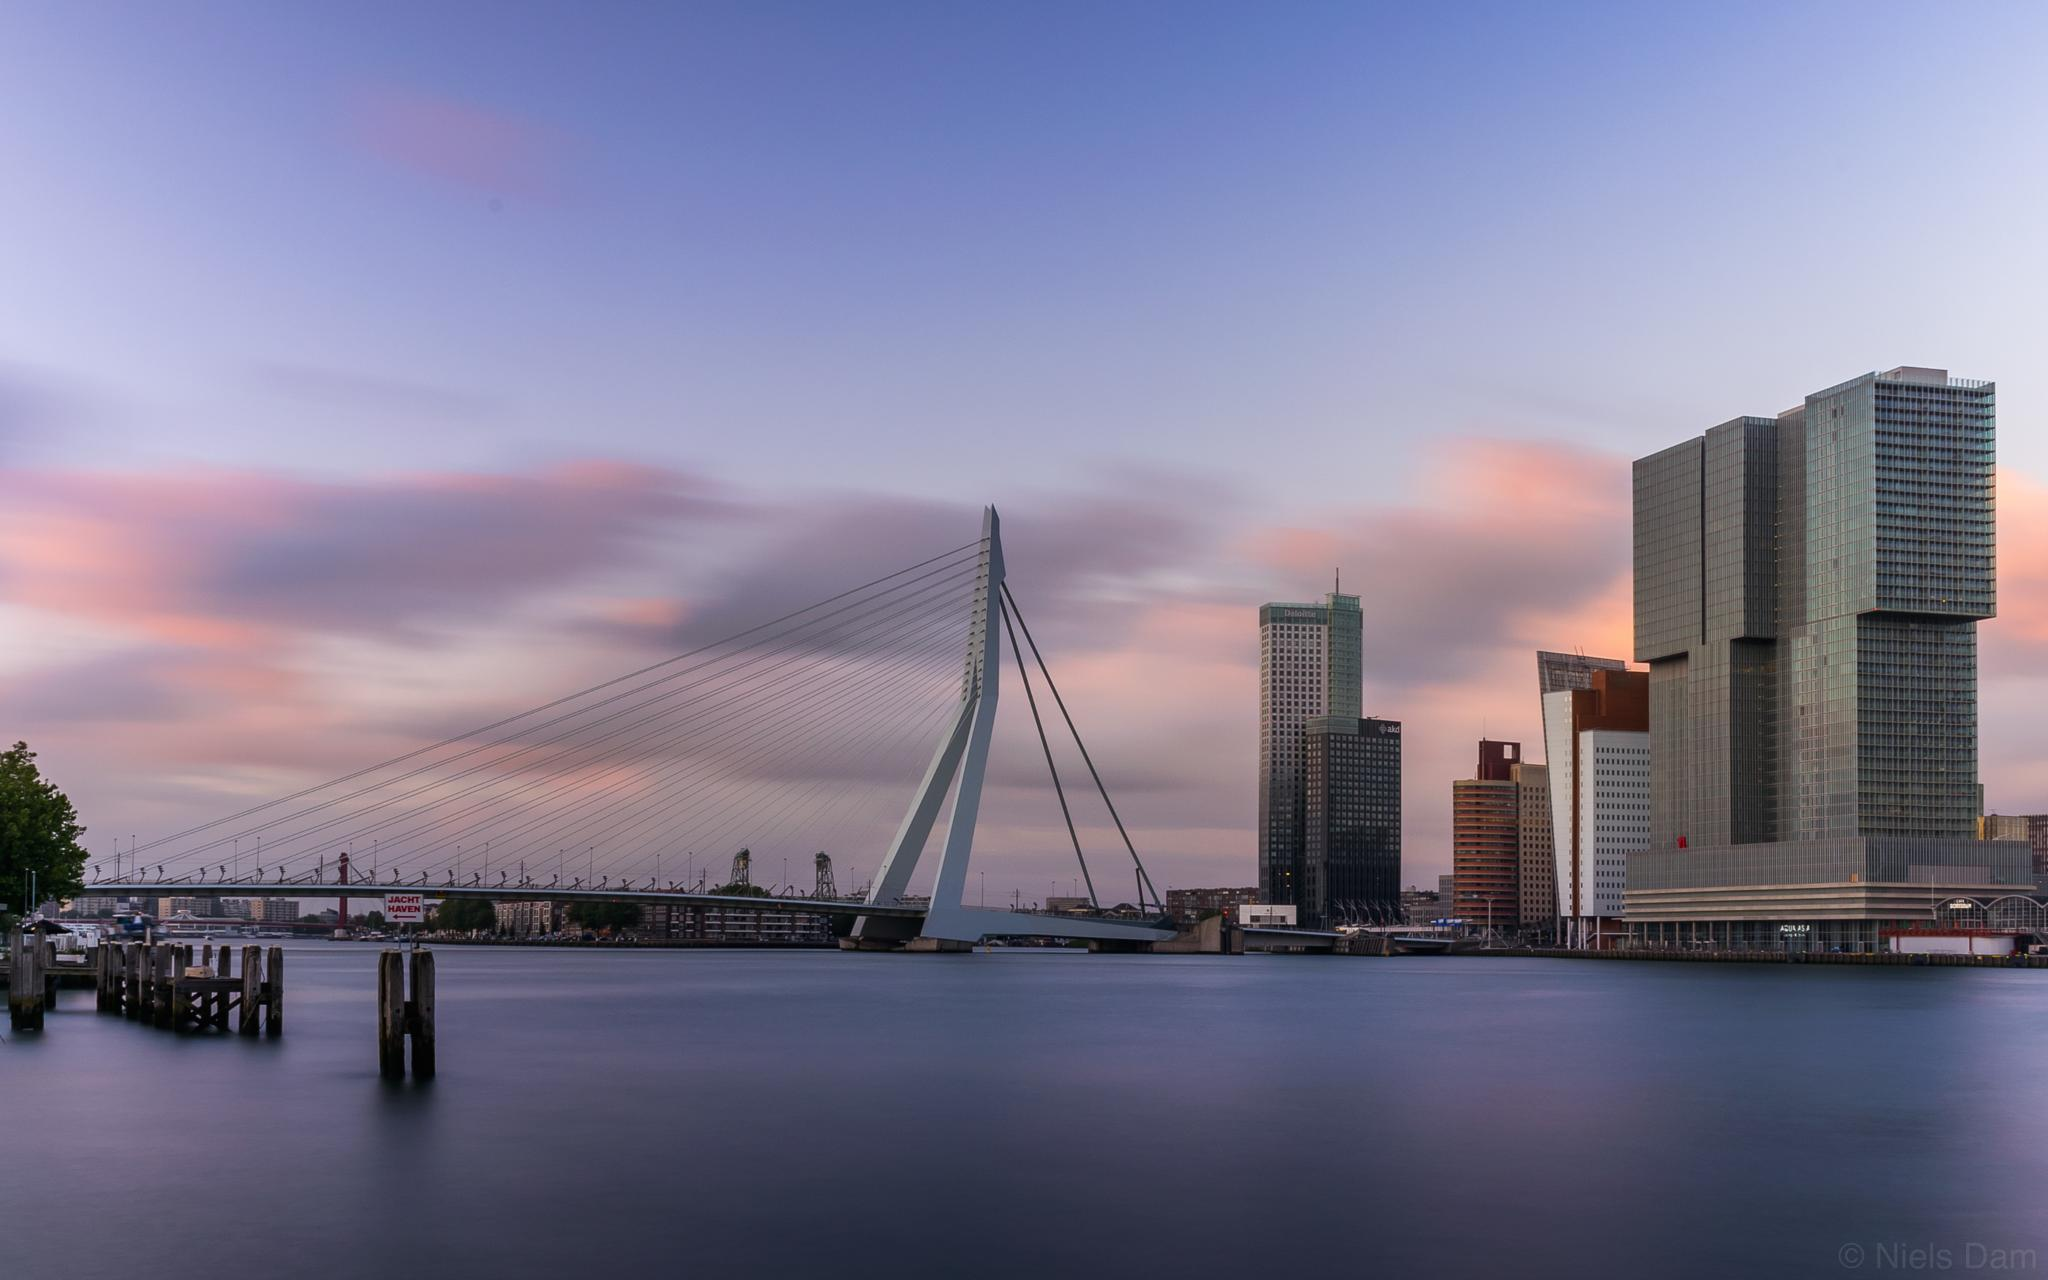 """""""Calm after the storm"""" by Niels Dam"""